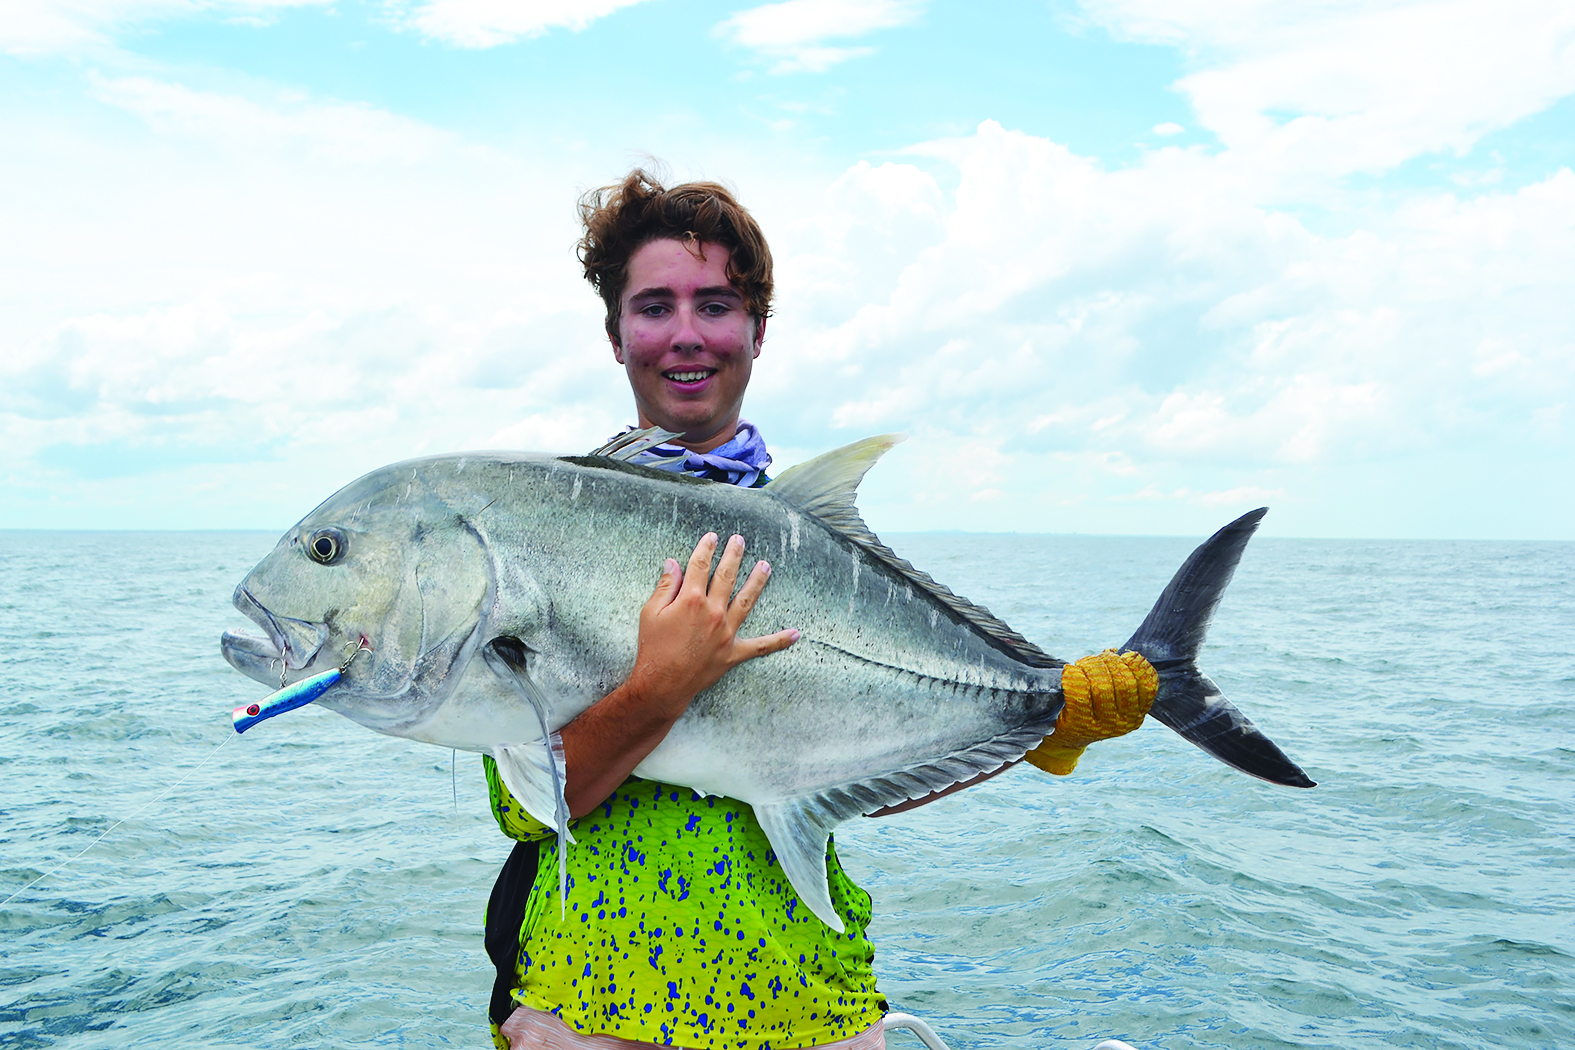 Matthew Horvath with a whopping 20kg giant trevally, which was a fantastic capture on 30lb tackle.